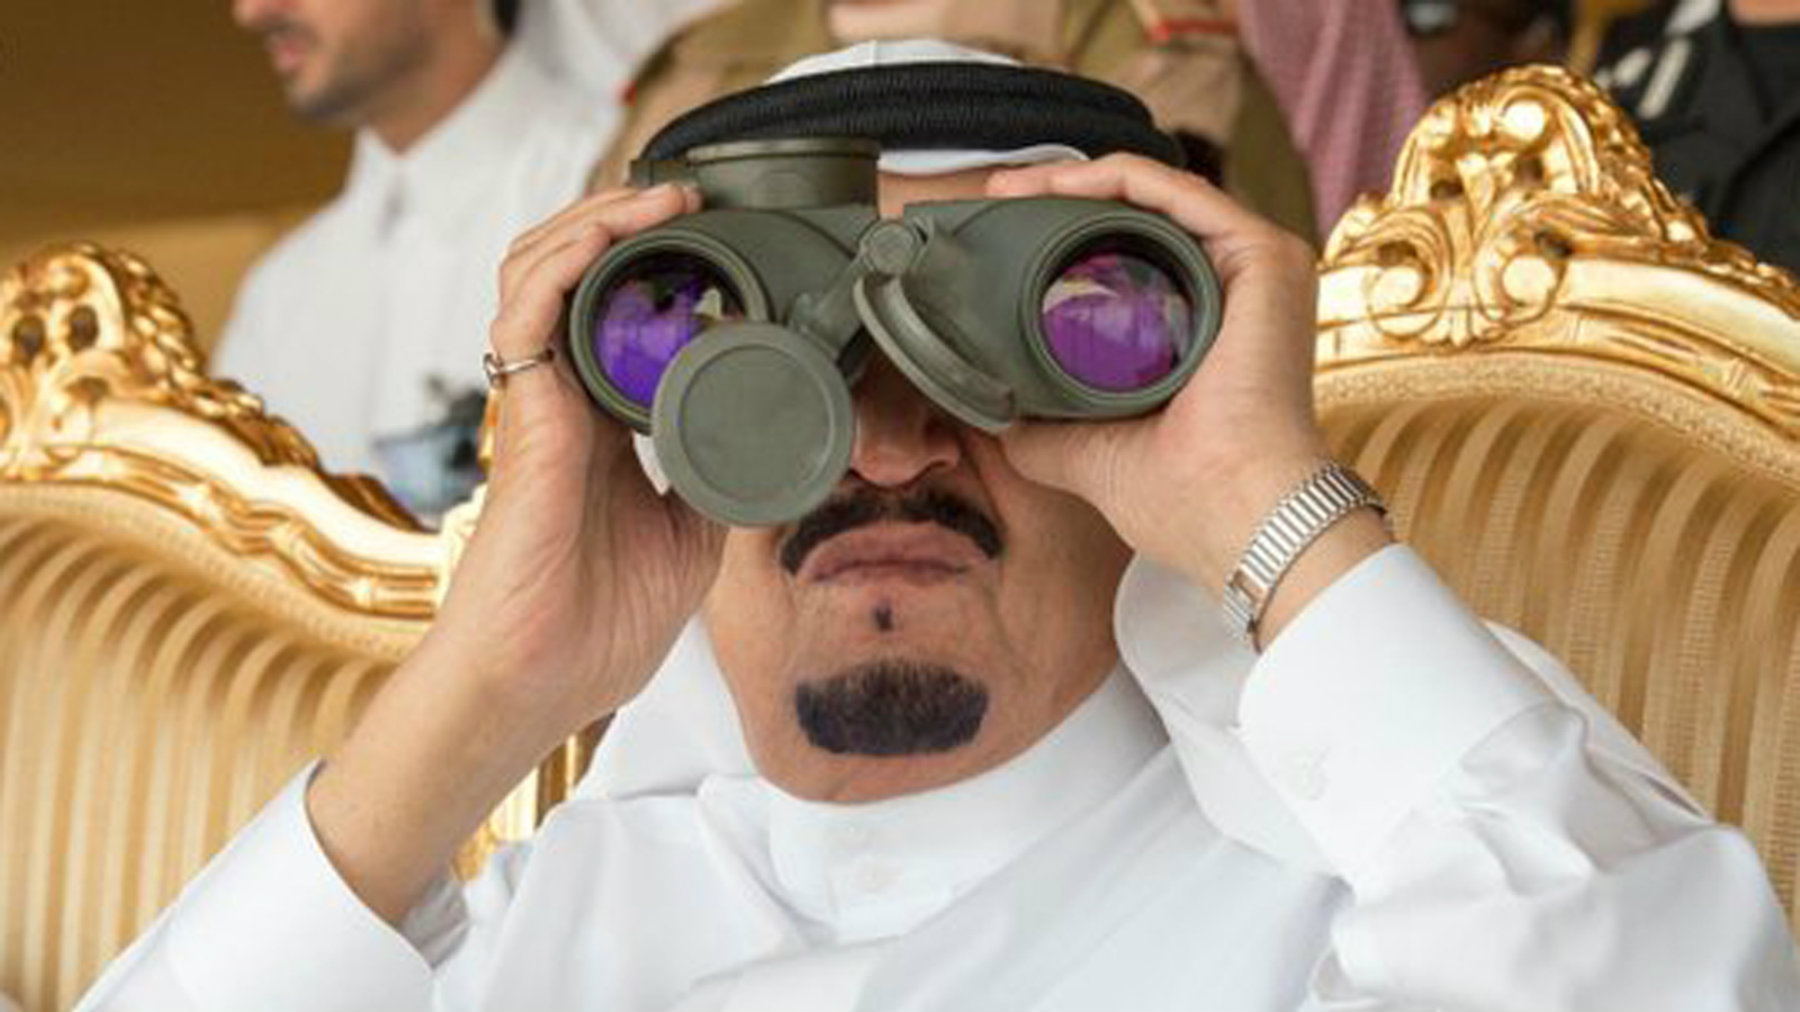 In this Thursday March 10, 2016 photo released by the Saudi Press Agency, SPA, Saudi King Salman watches the North Thunder military exercises in Hafr Al-Baten, Saudi Arabia. Heads of state from across the Muslim world gathered in Saudi Arabia on Thursday for the conclusion of a nearly three-week-long counter-terrorism military exercise that included 20 participating countries. (Saudi Press Agency via AP)